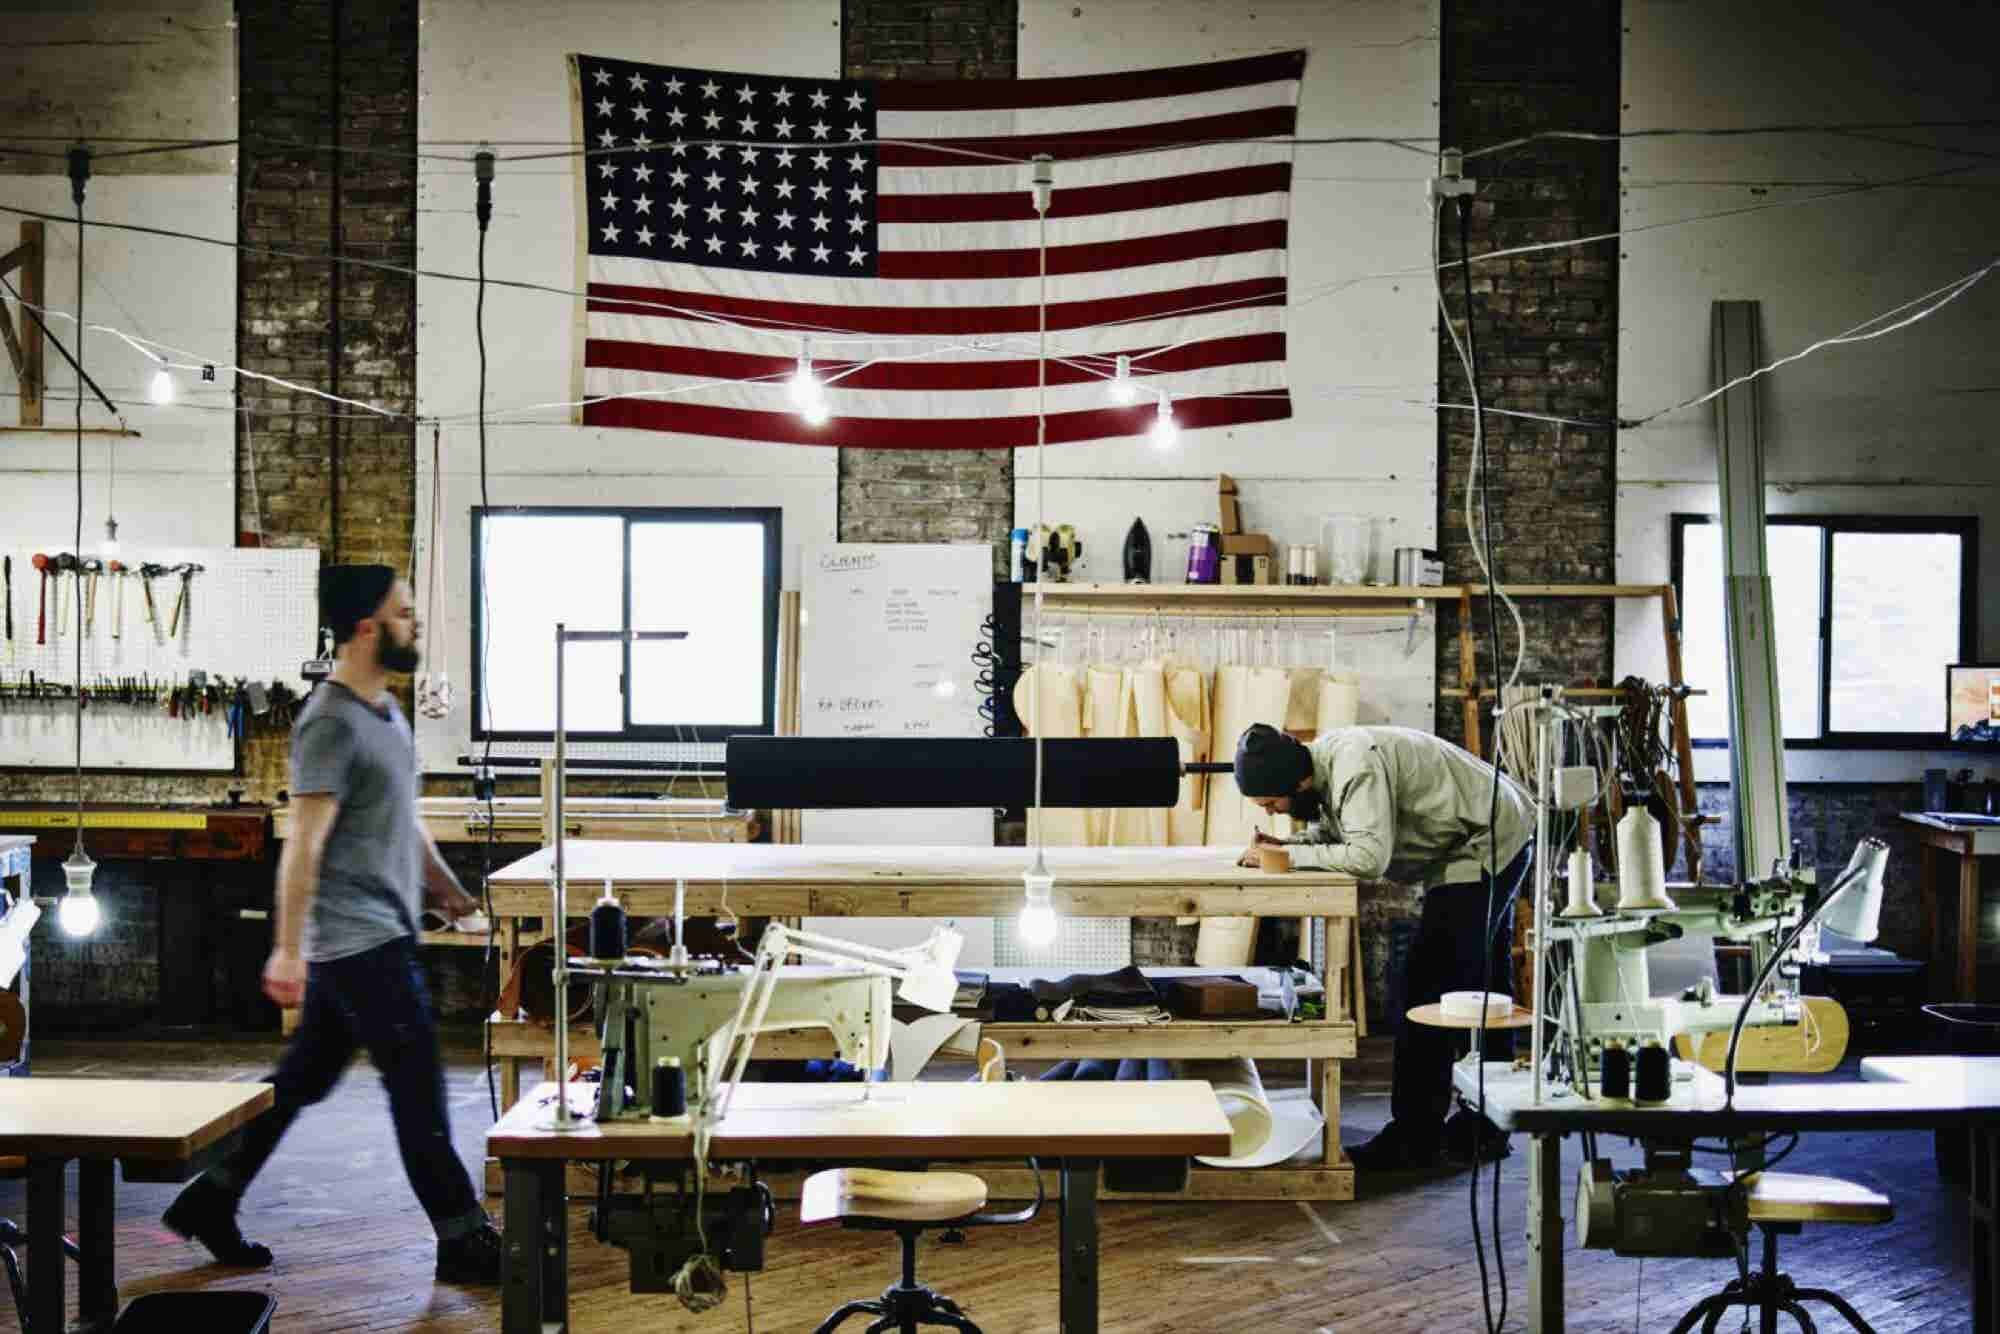 Don't Wait for the Government: Entrepreneurs Are Keeping America Great